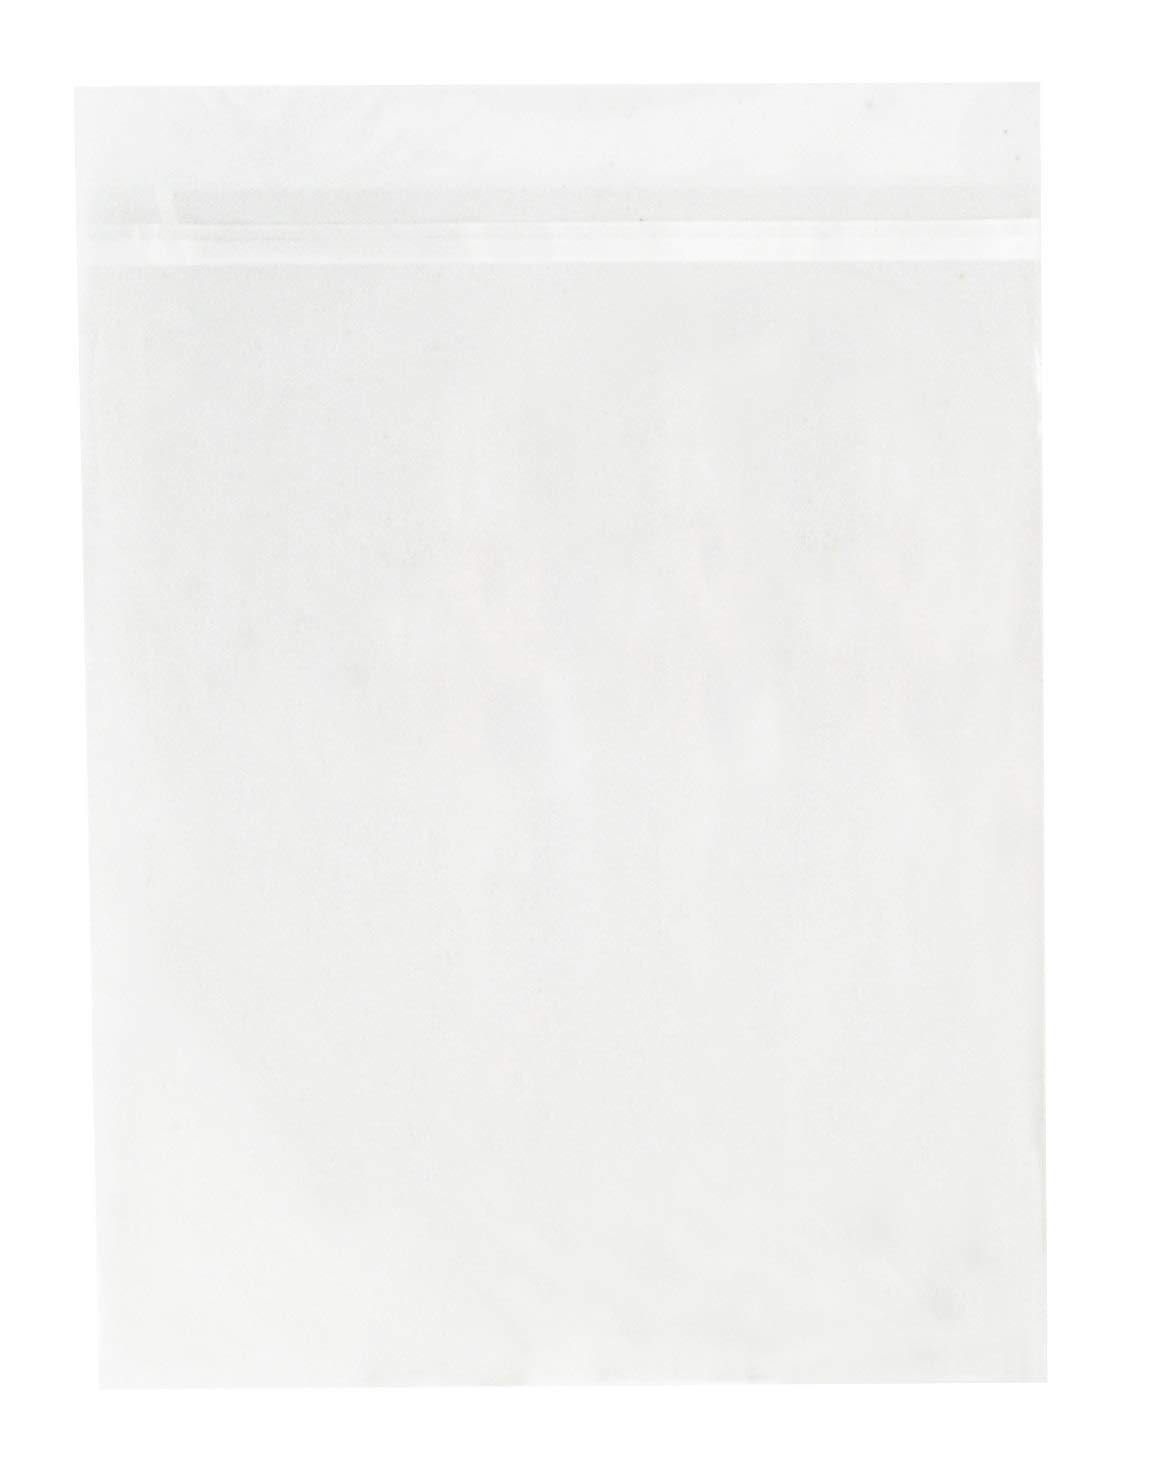 Golden State Art, Pack of 100 11 1/4 x 14 1/8 Clear Bags for 11x14 Mat Matting by Golden State Art